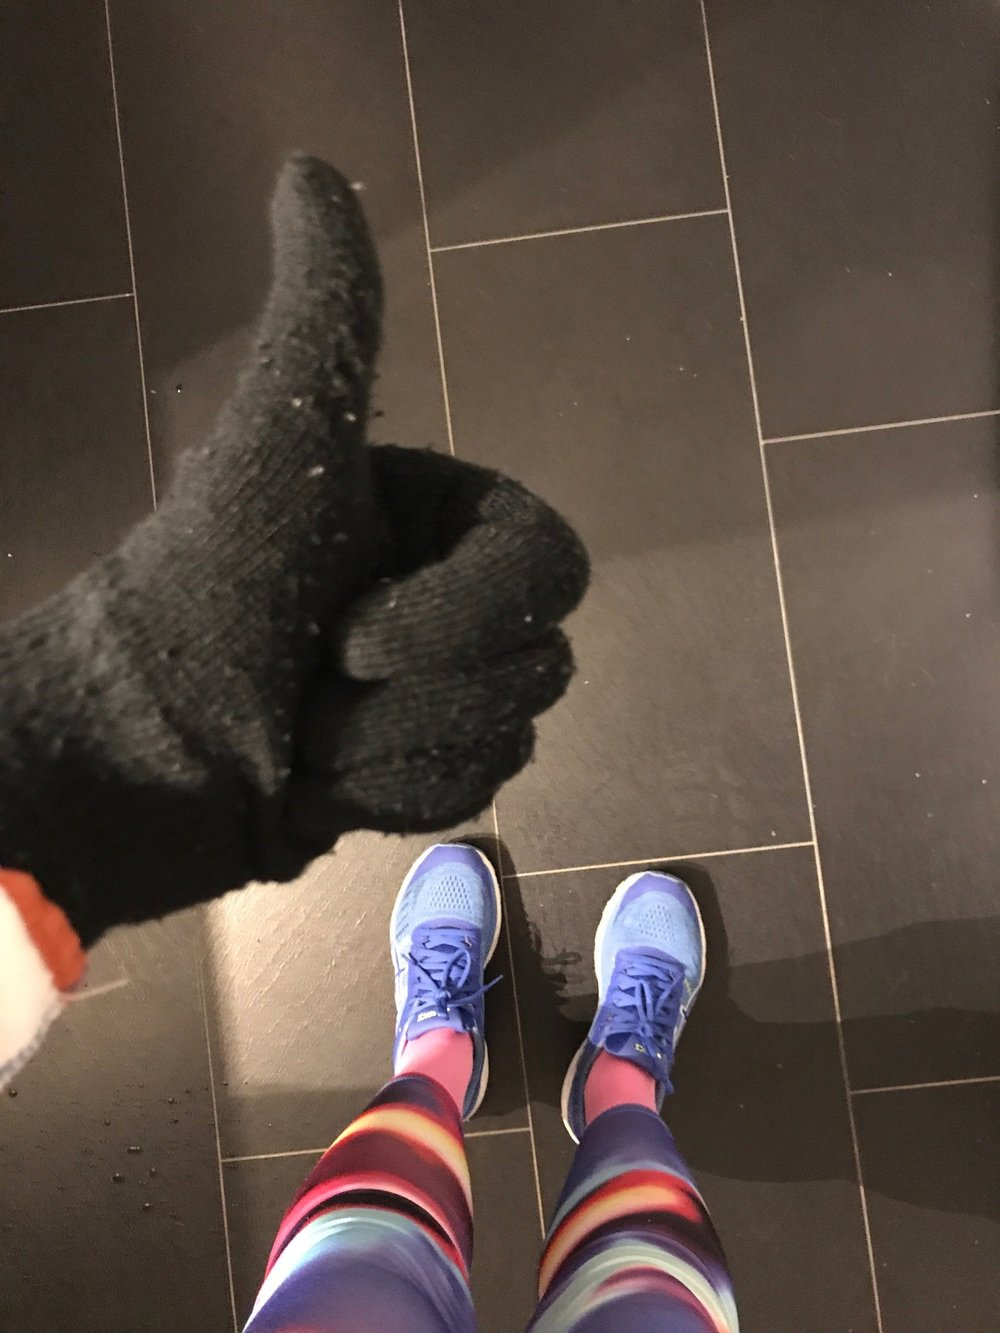 First run this autumn I've had to wear mittens, the rain was coming down pretty hard outside! (Disregard how dirty our hallway floor is btw)